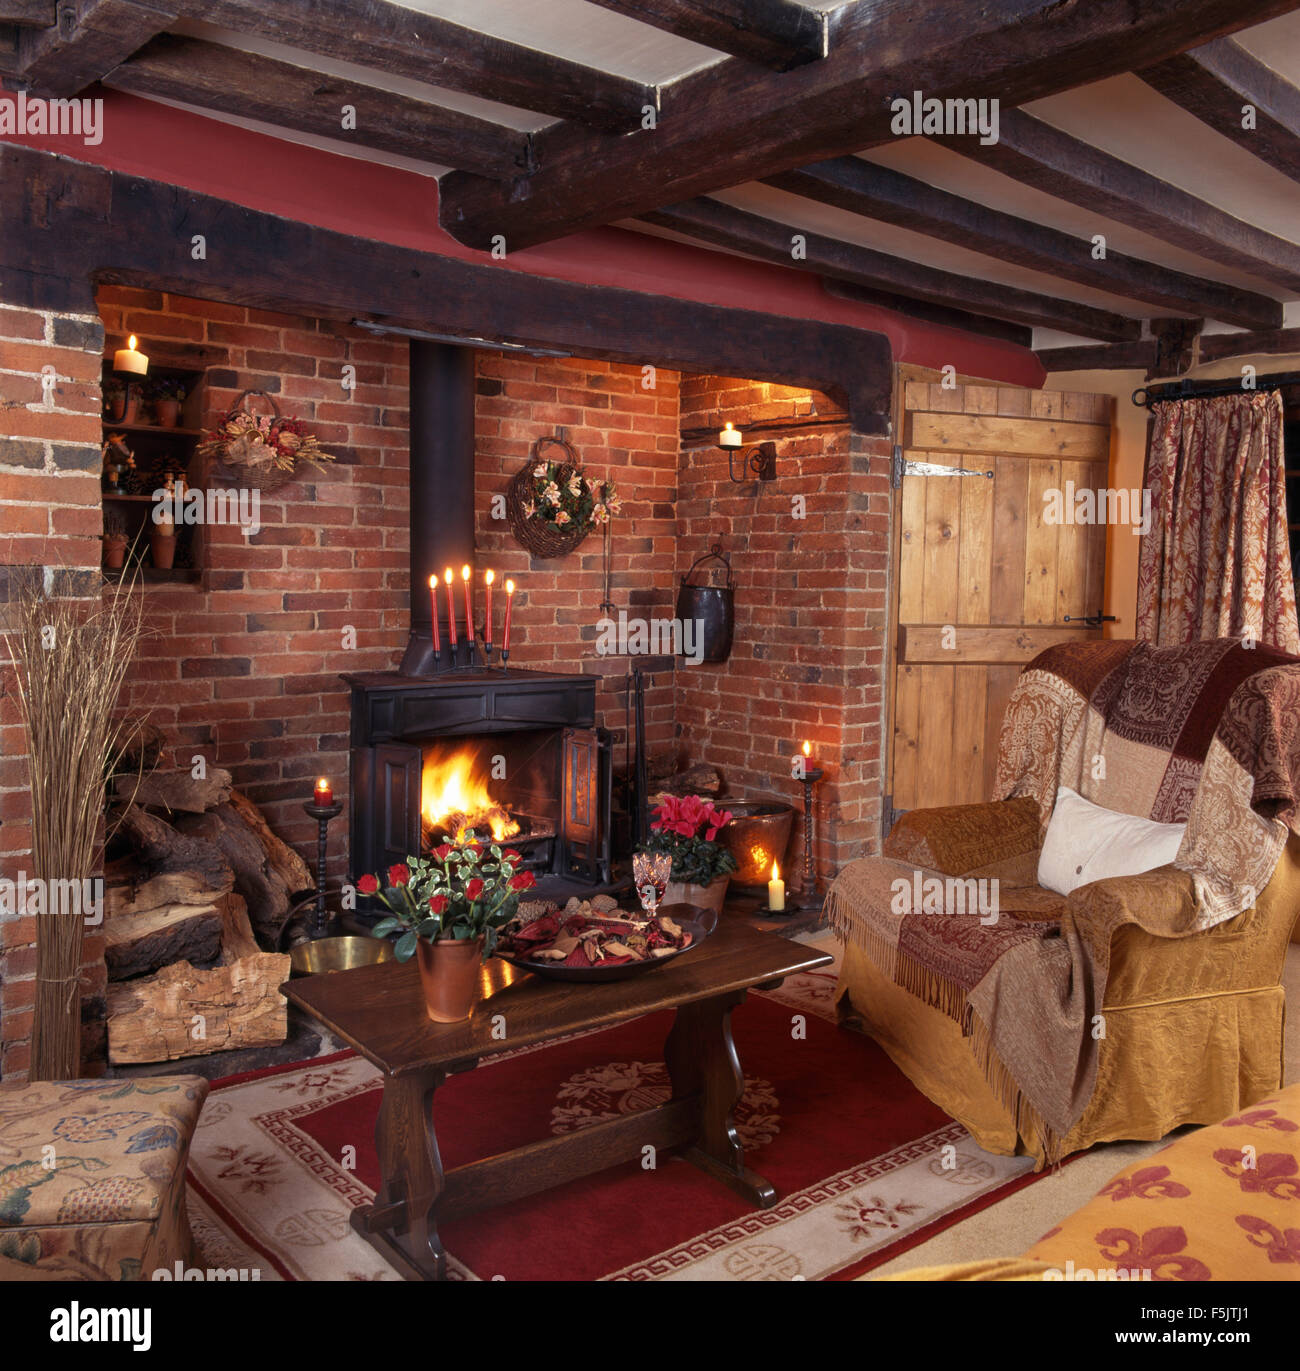 Wood burning stove in inglenook fireplace in  a beamed nineties country living room with an oak coffee table beside - Stock Image